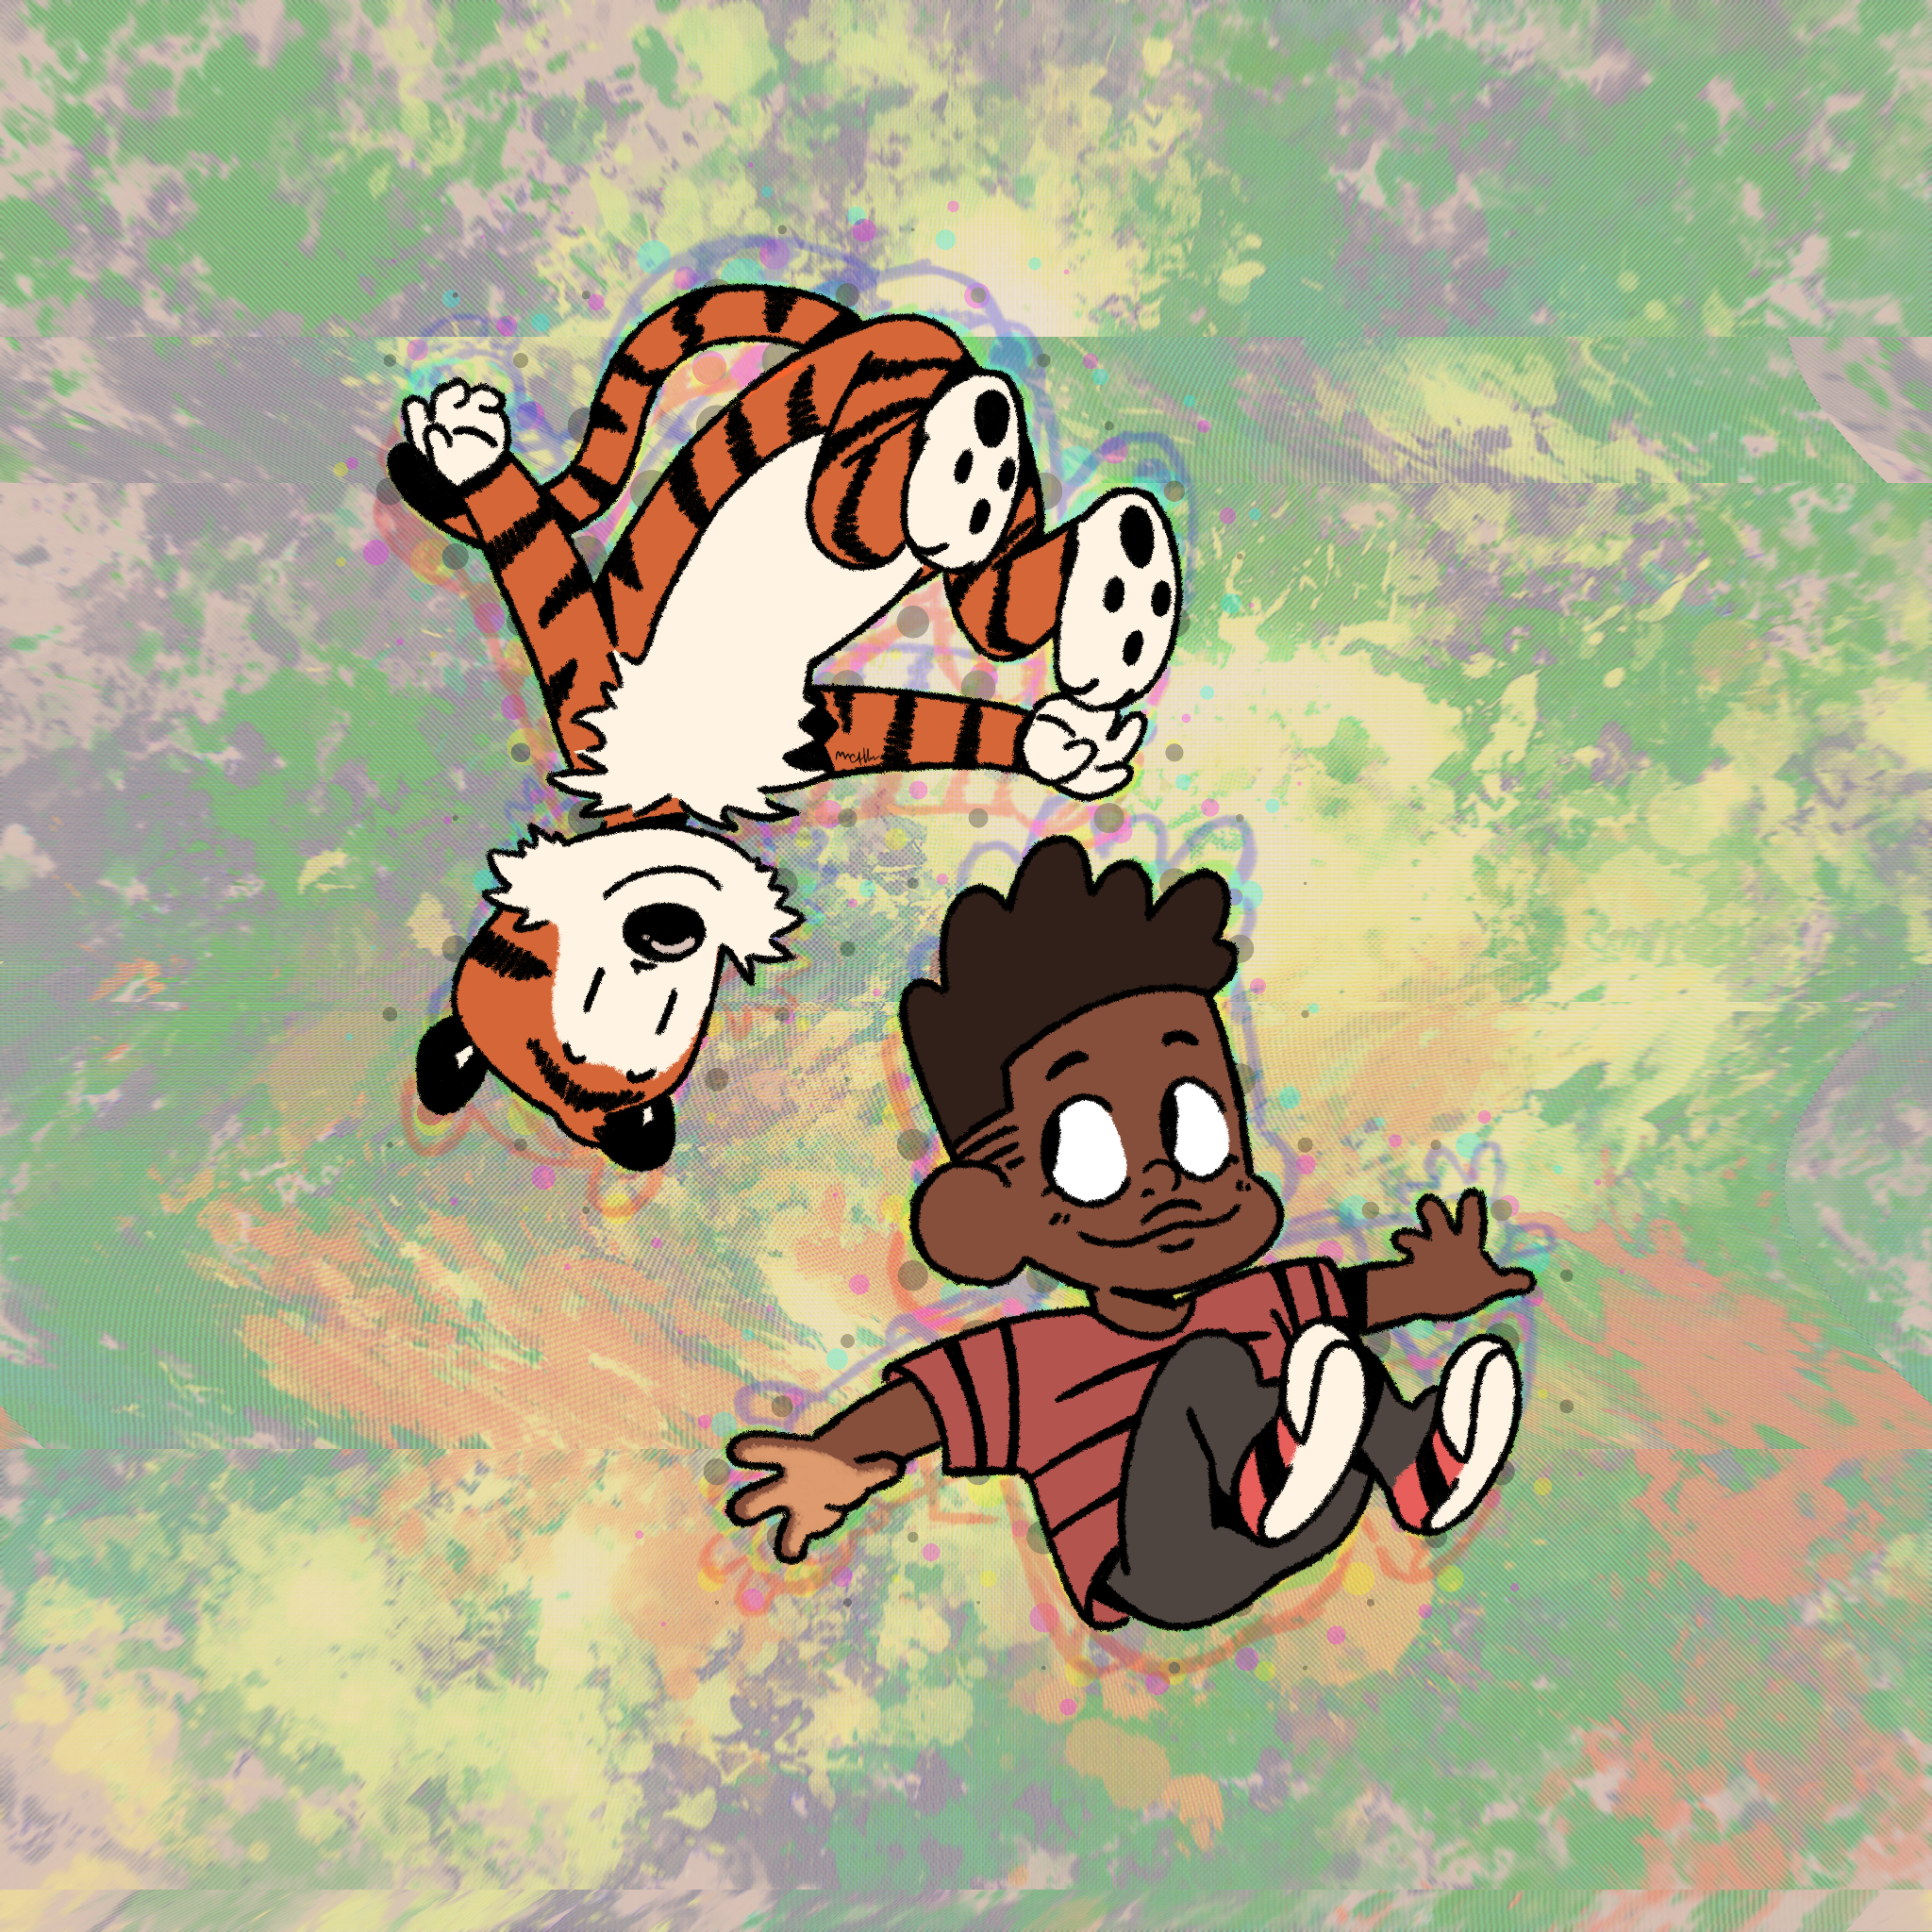 Calvin and Hobbes (made for blacktober 2020)